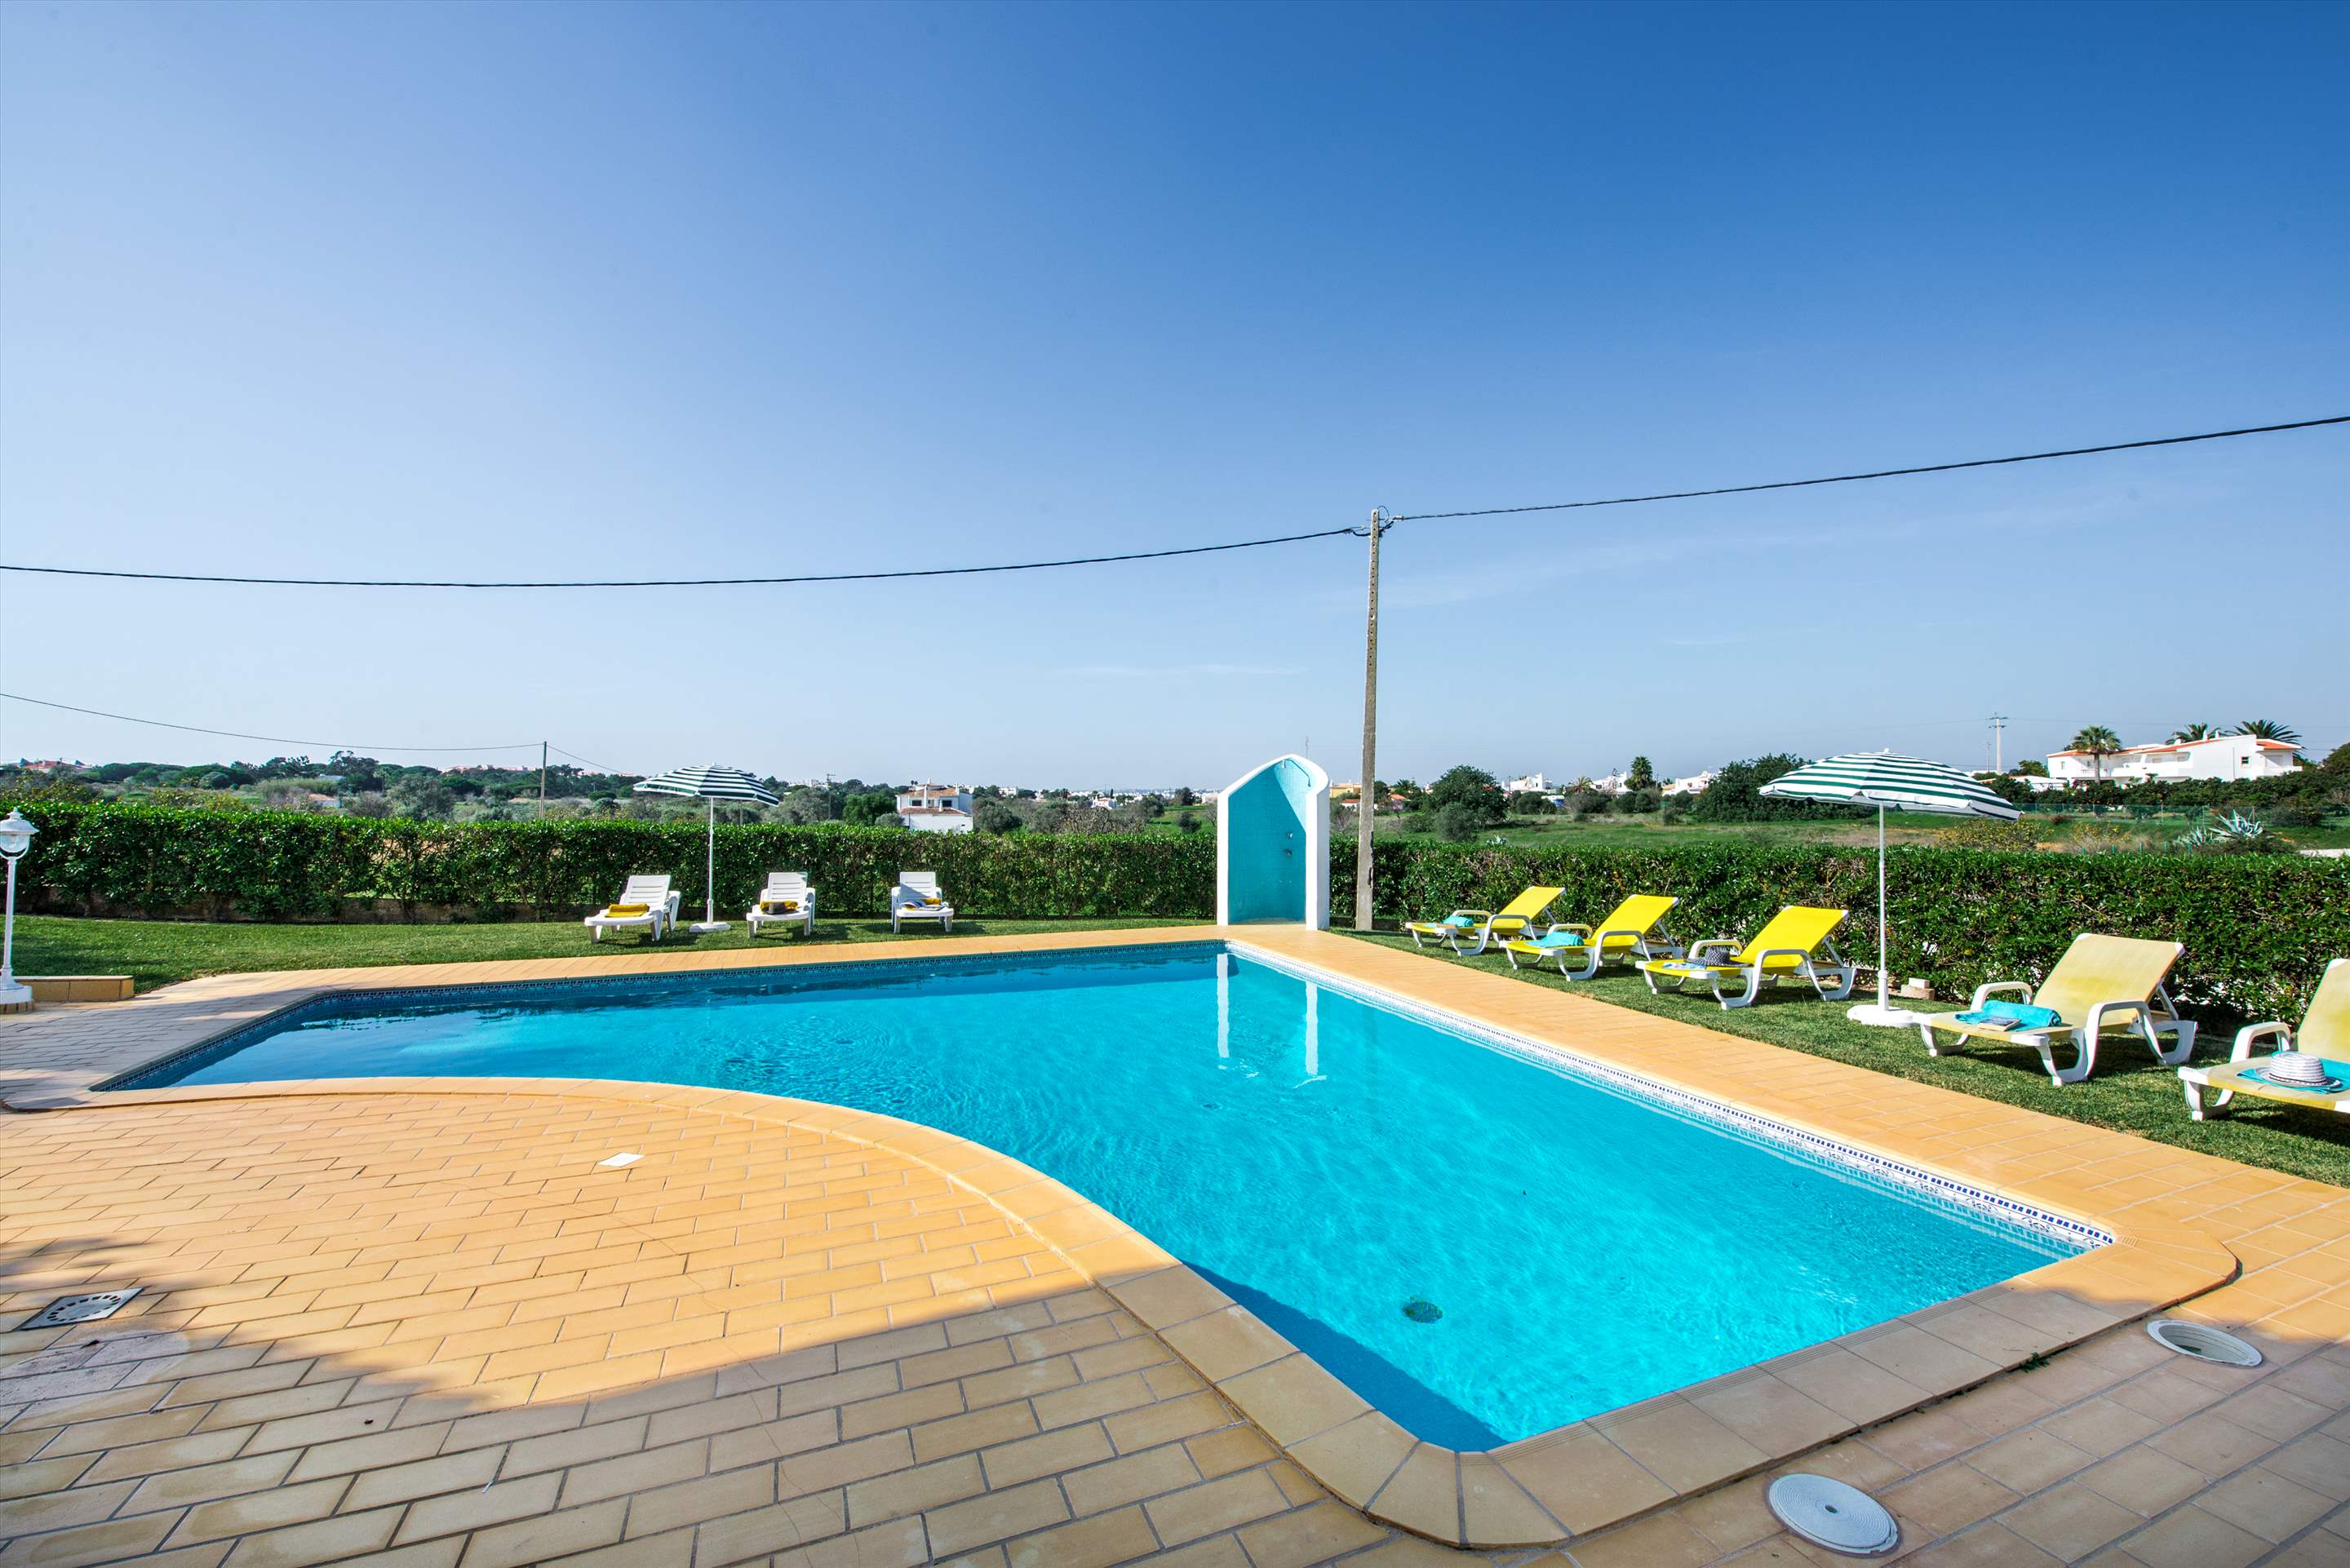 Villa Marco Real, 7-8 persons rate, 4 bedroom villa in Gale, Vale da Parra and Guia, Algarve Photo #23